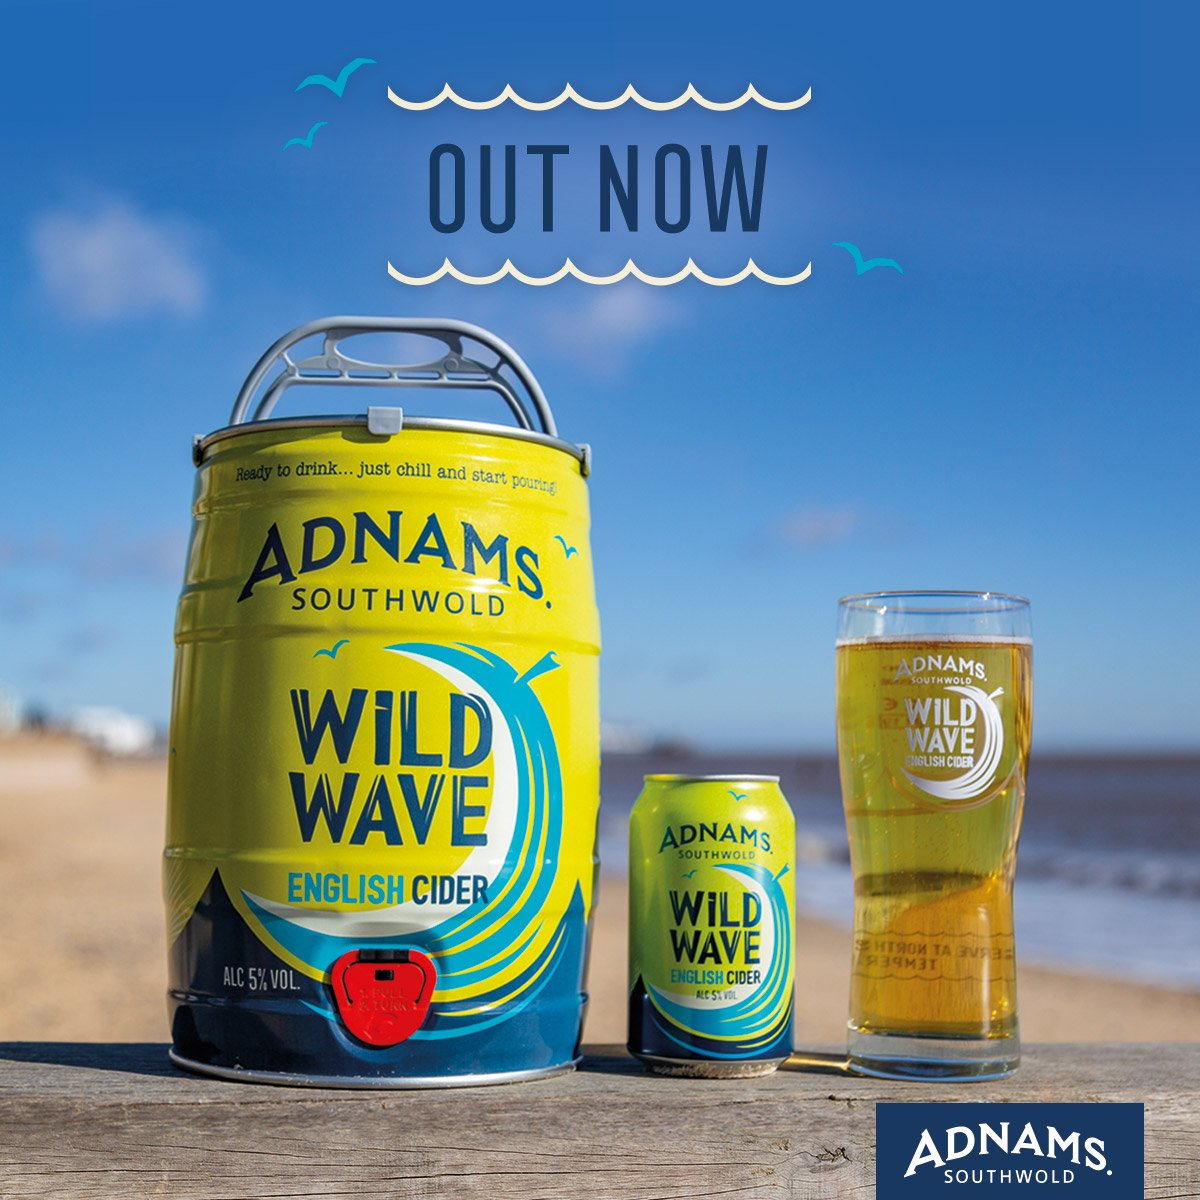 Enjoy Adnams' new cider here first